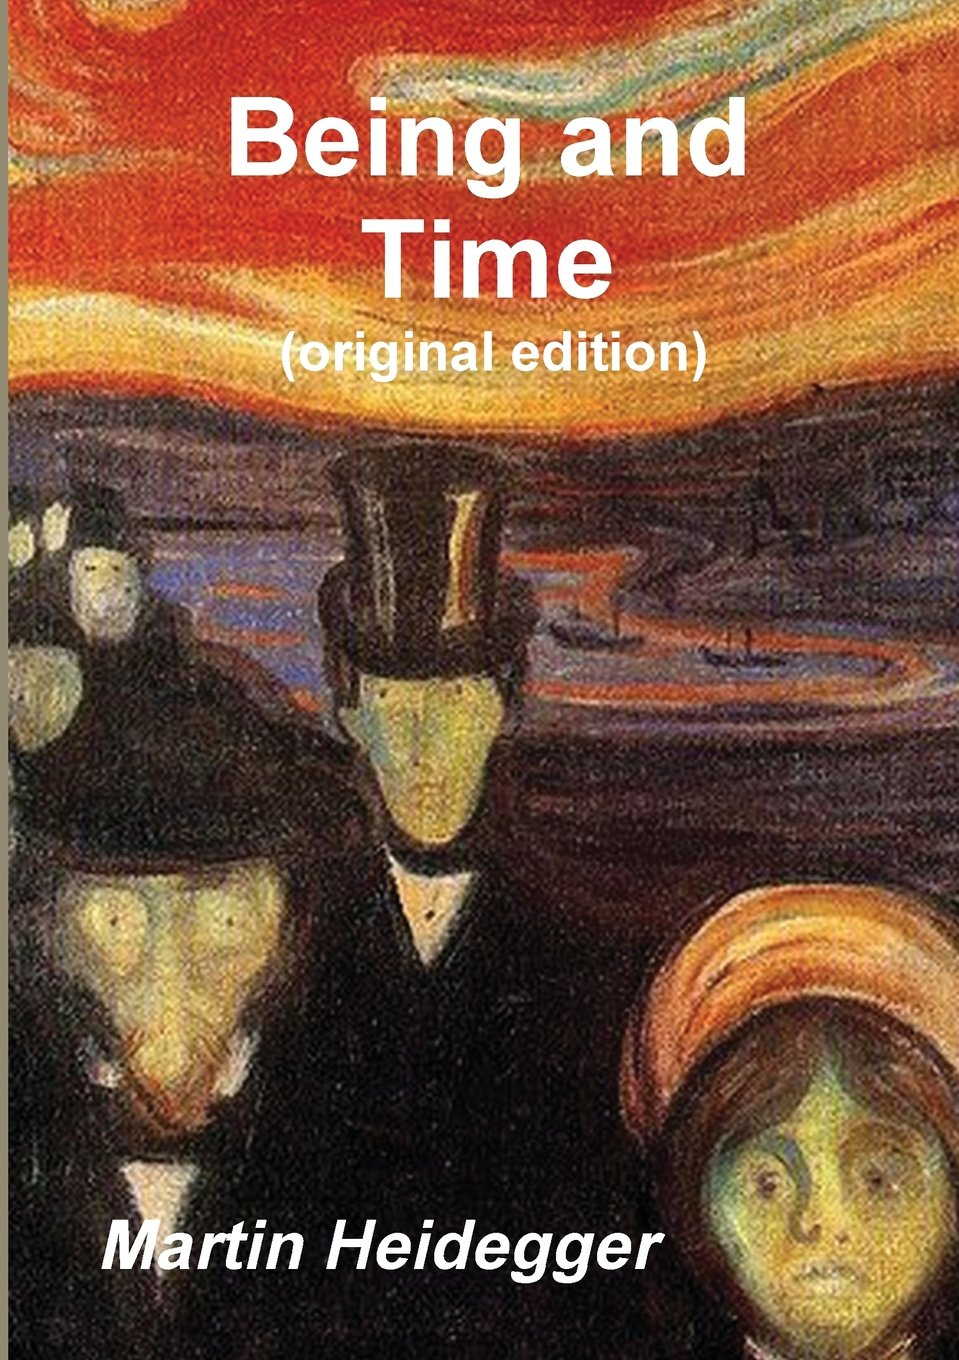 Download Being and Time (Original Edition) ebook